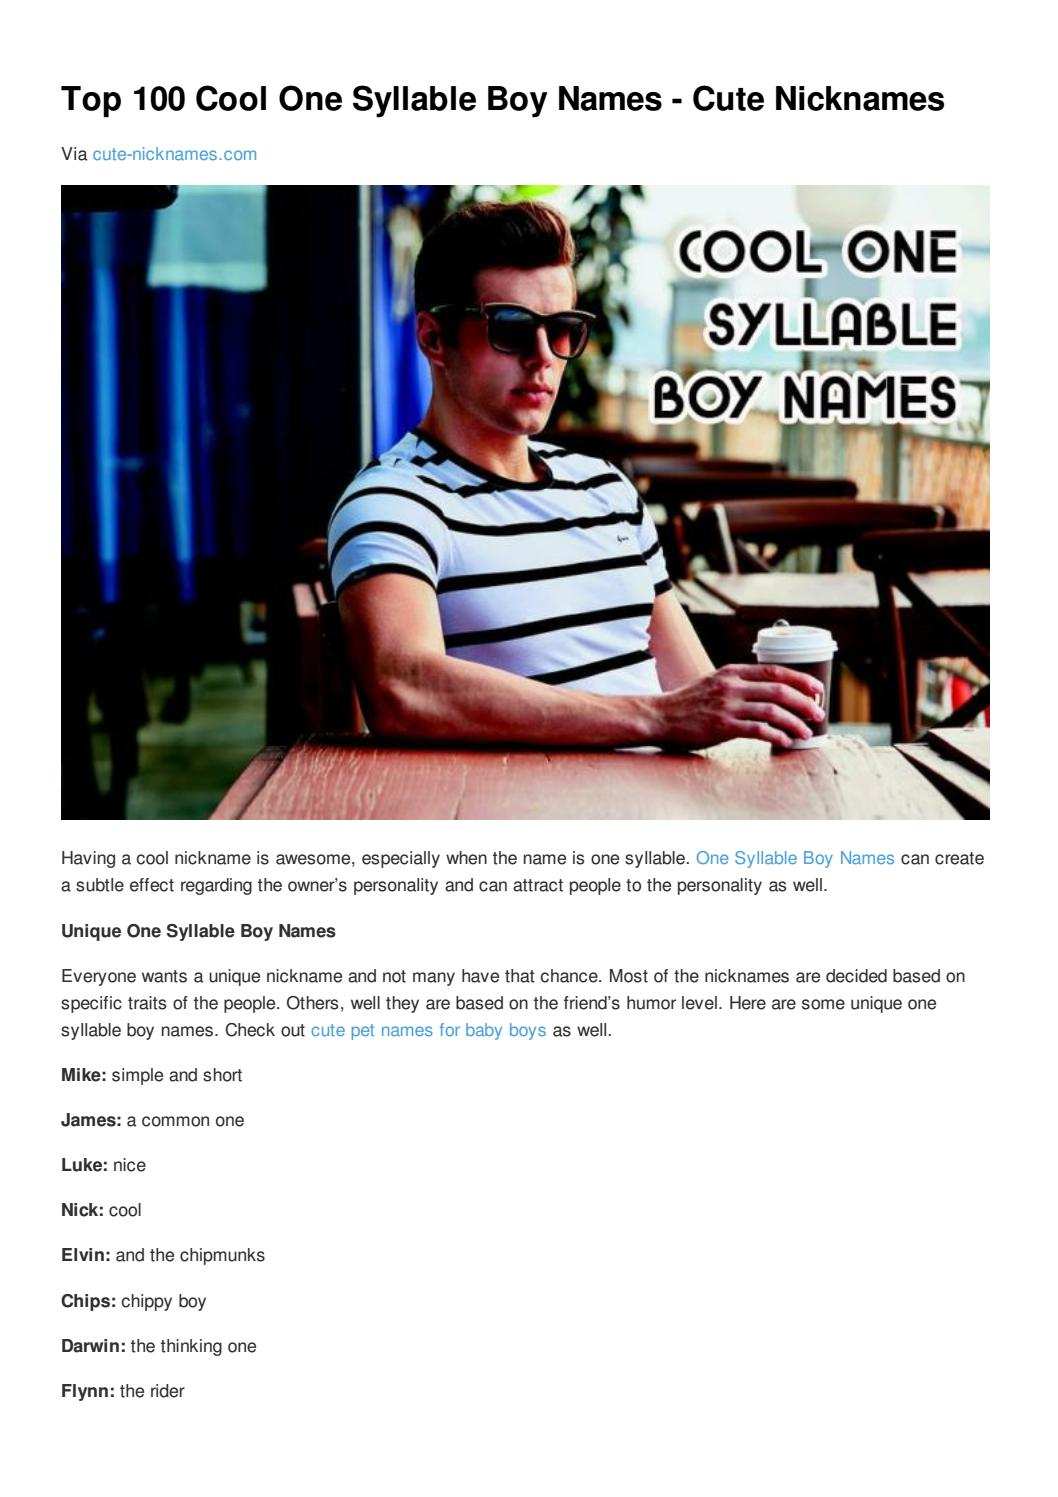 Top 100 cool one syllable boy names cute nicknames by Cute